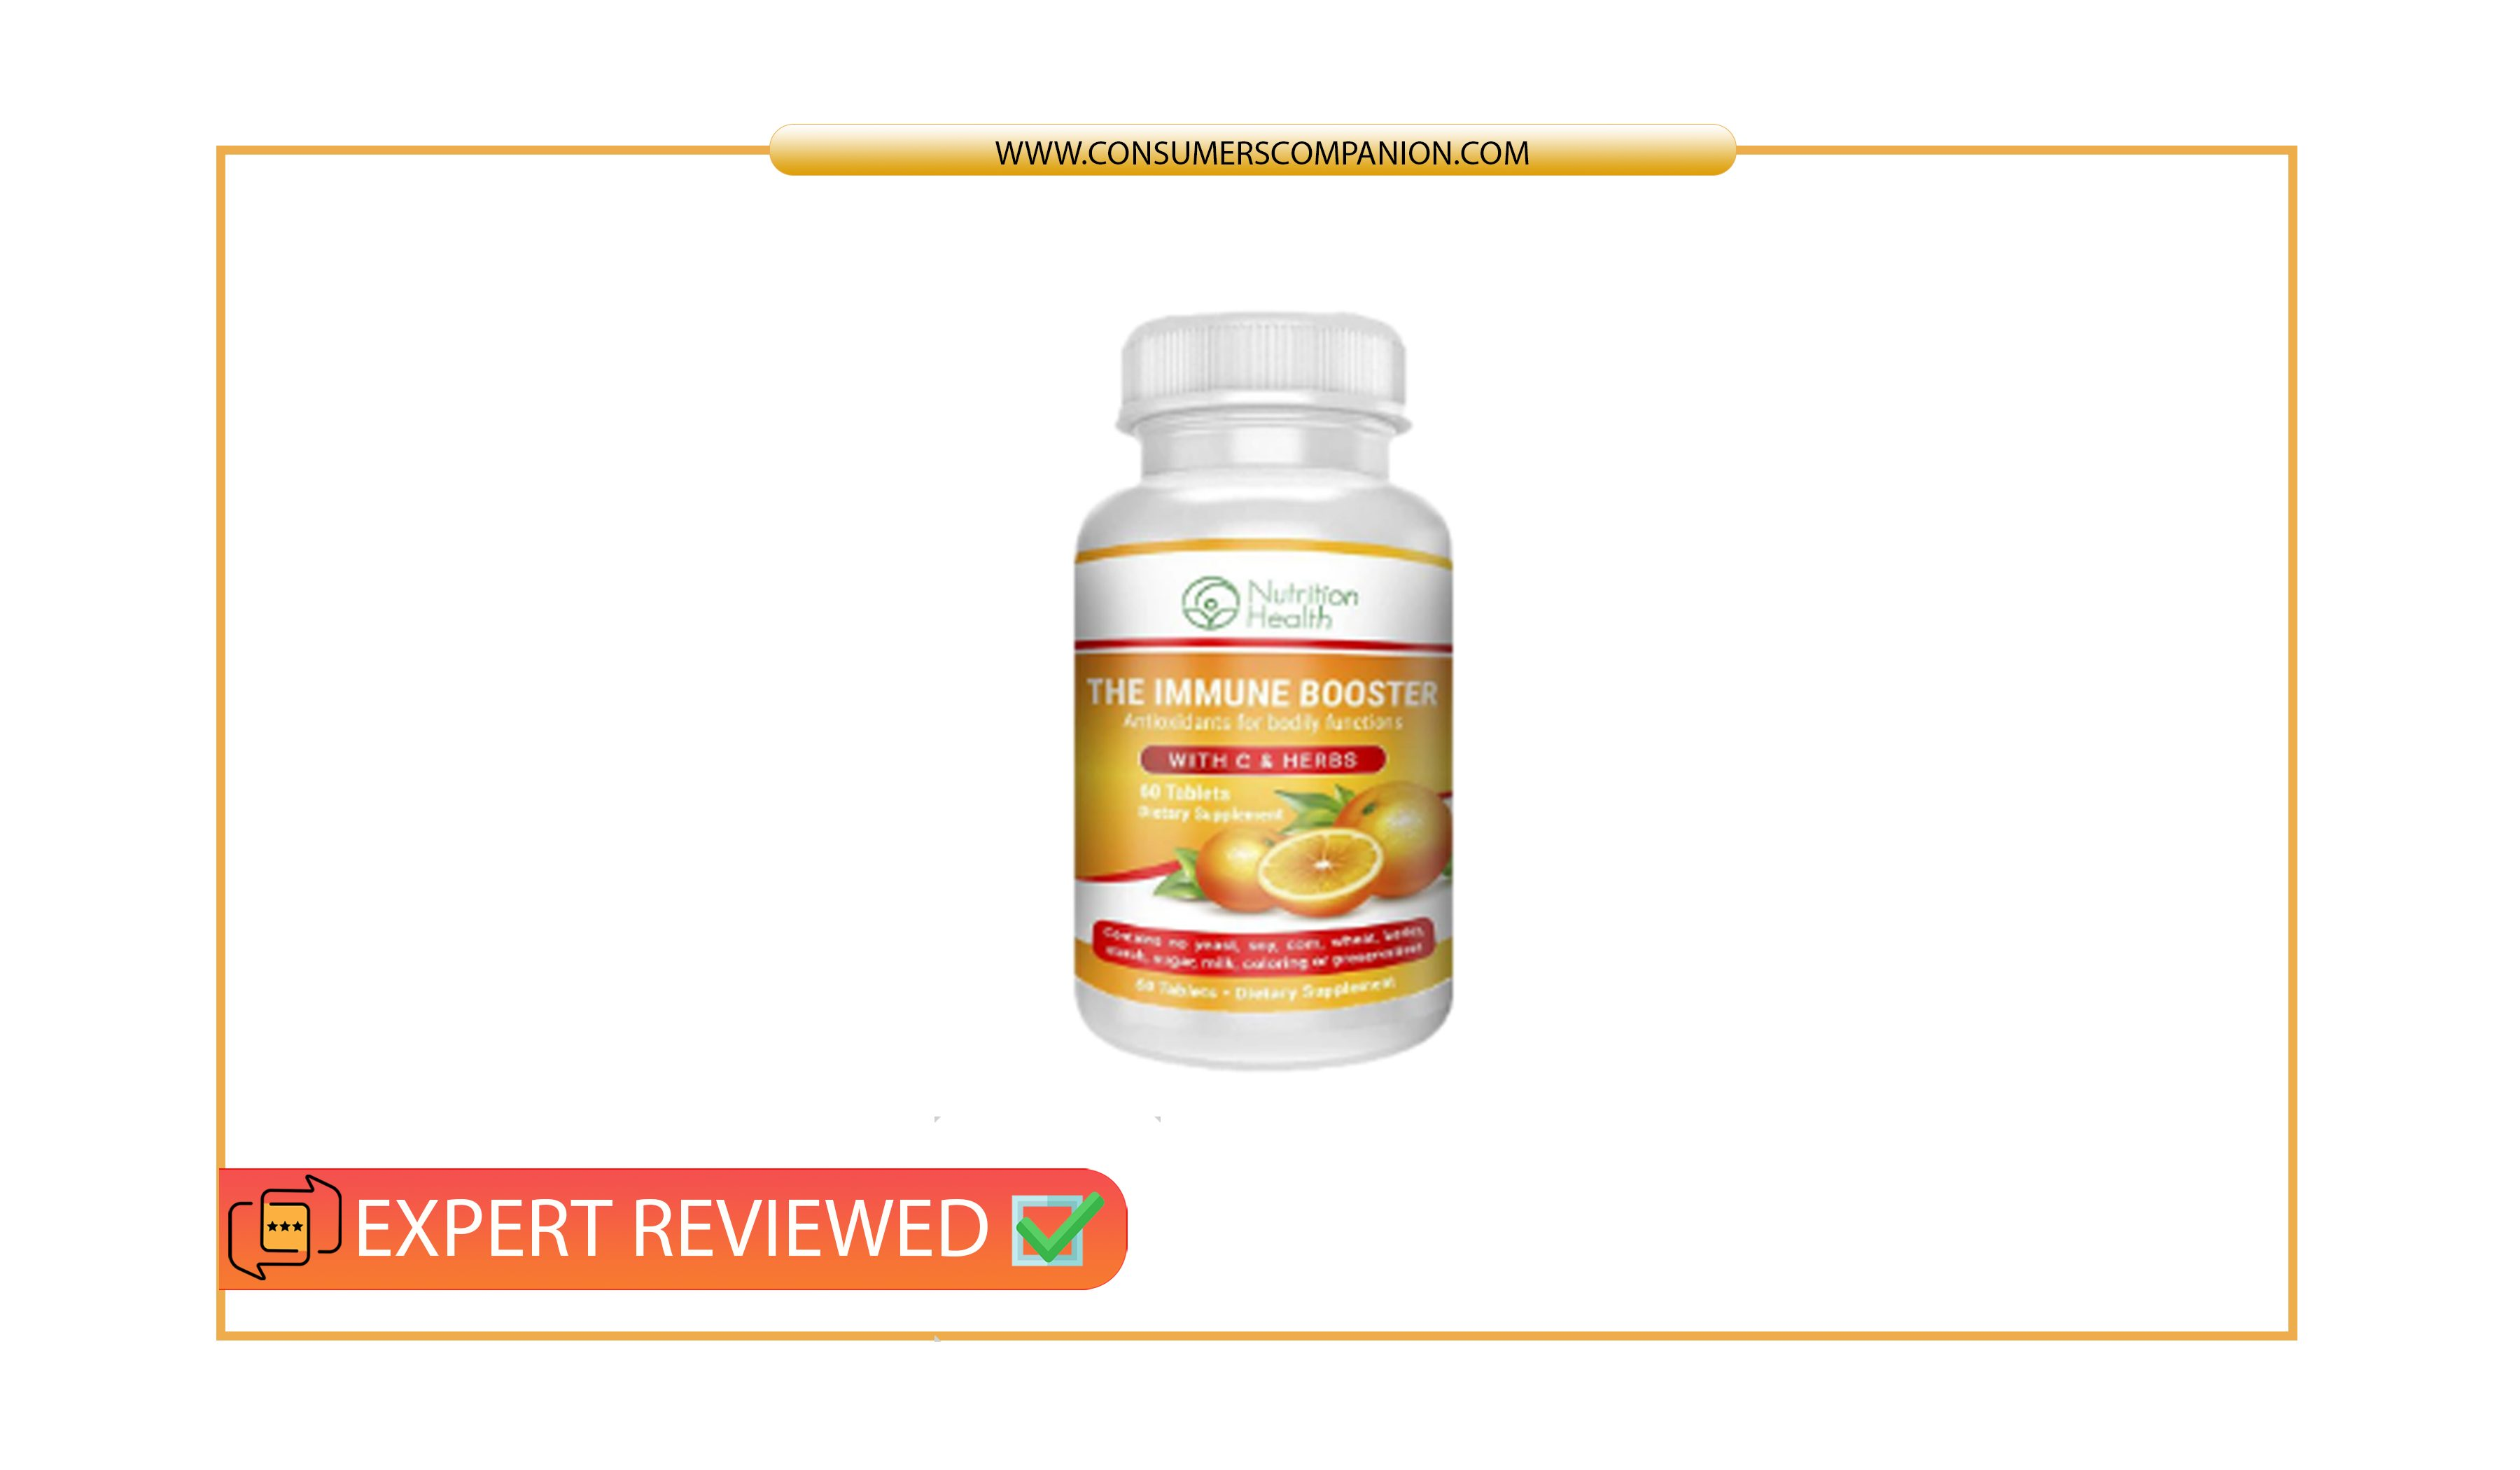 Nutrition Health Immune Booster